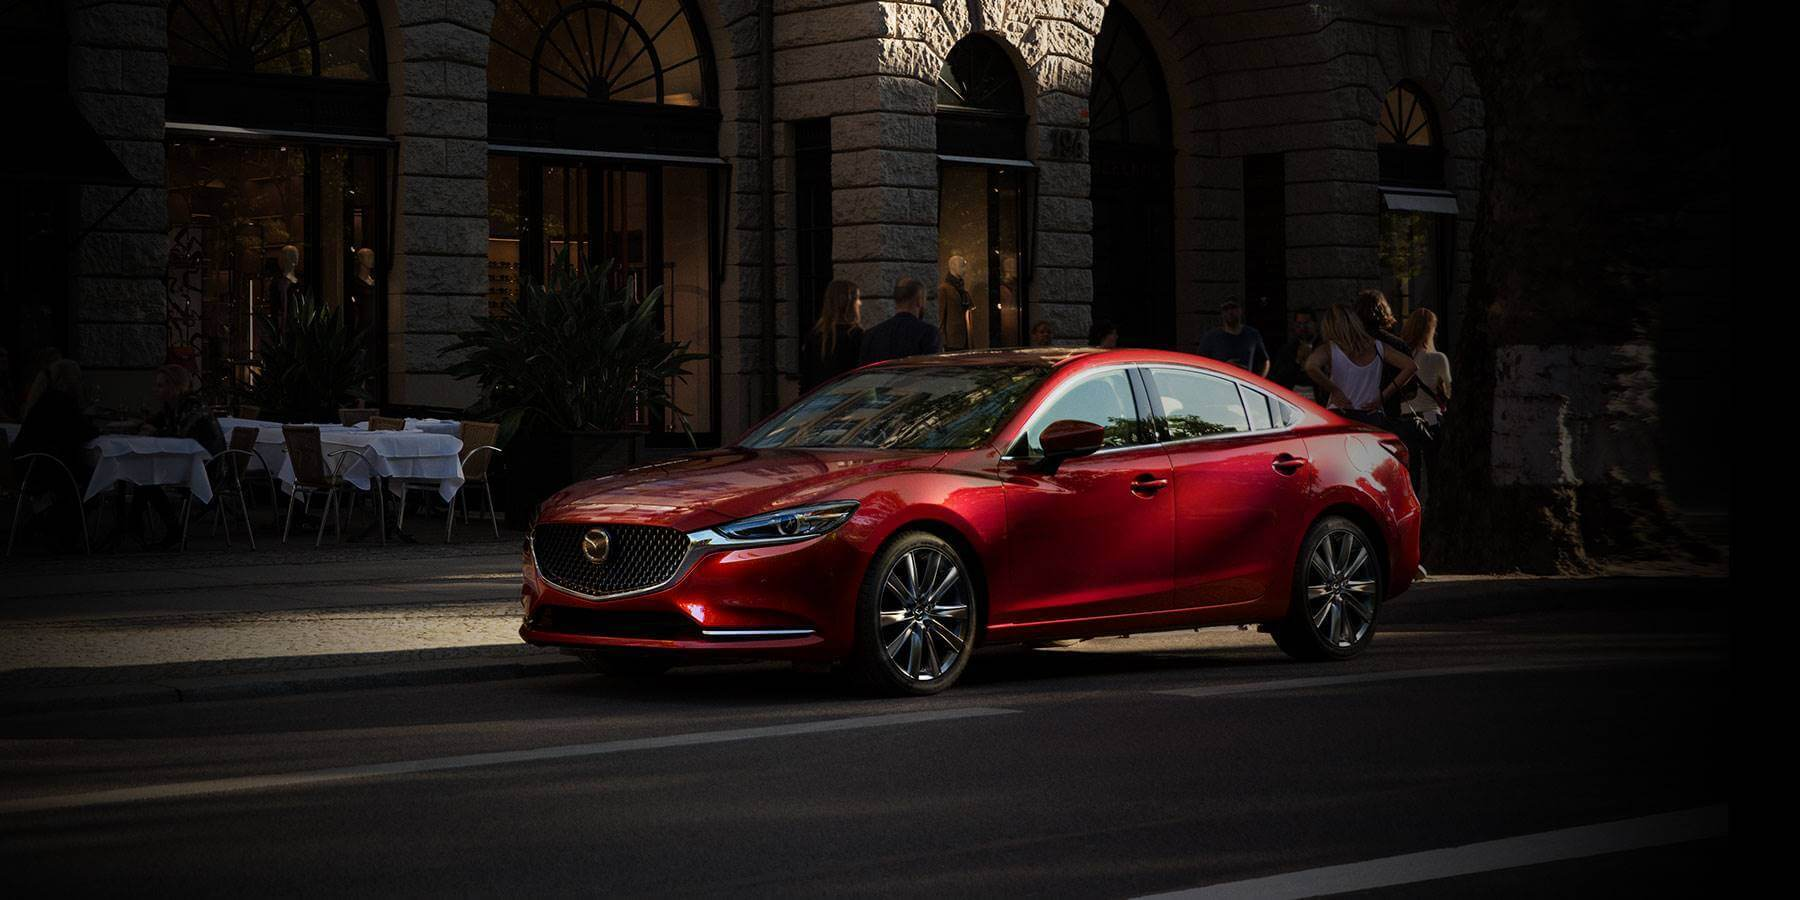 The New 2018 Mazda6 in Fond du Lac, WI